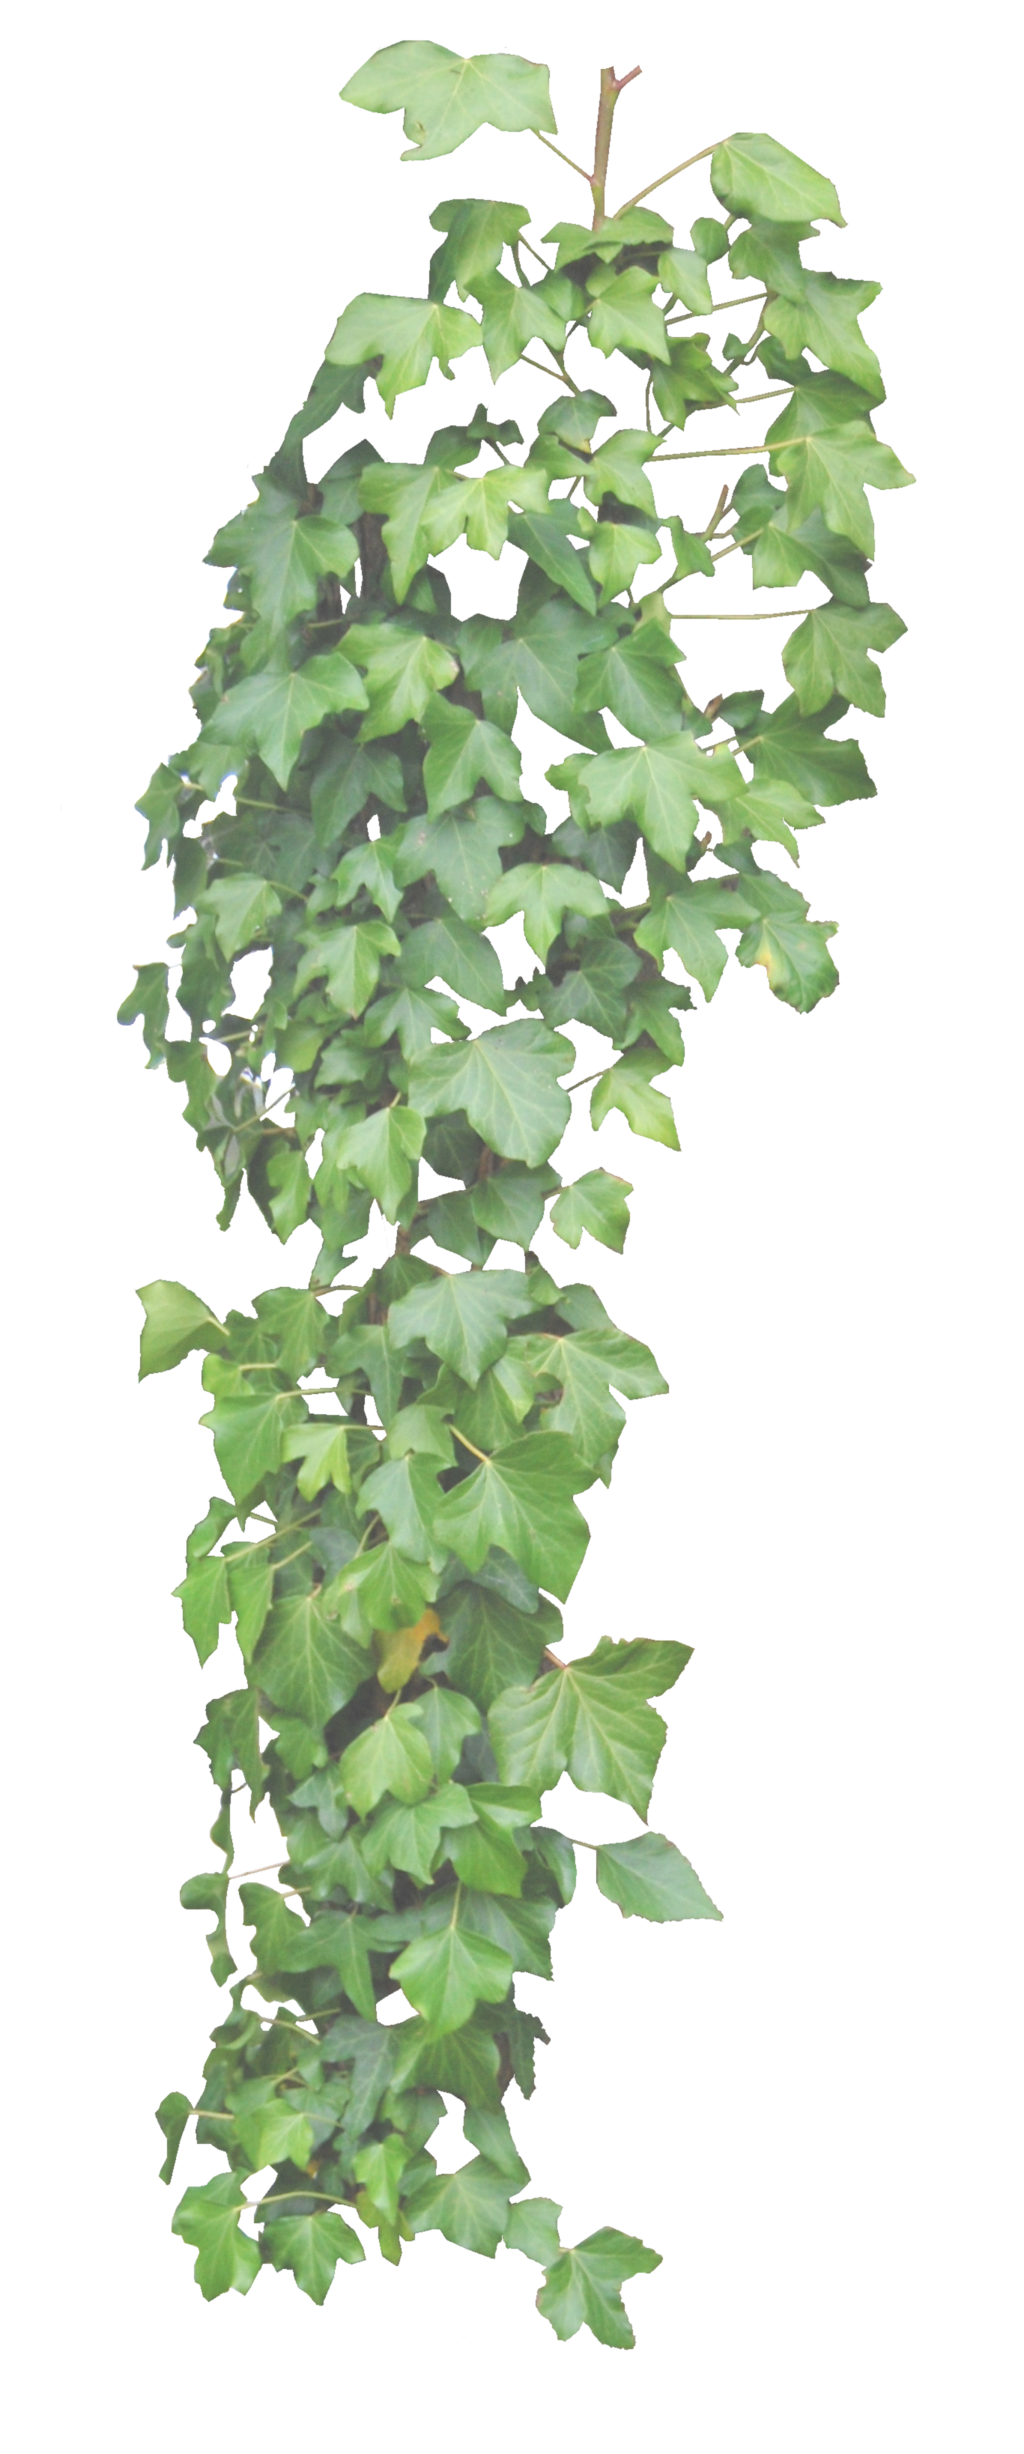 Ivy HD Transparent Background